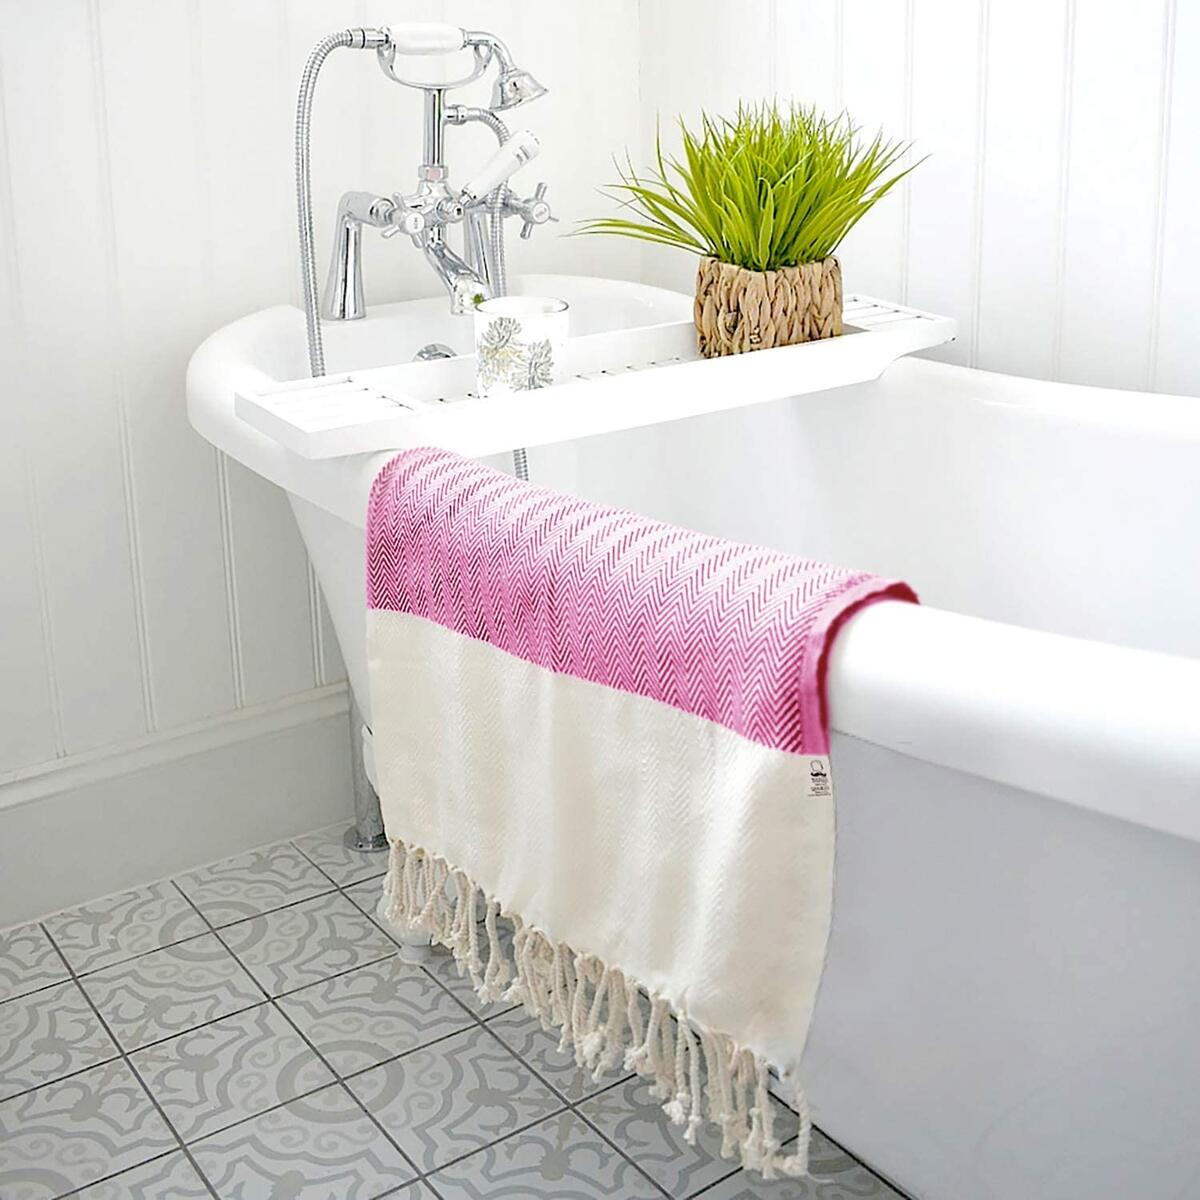 Herringbone Turkish Towel  Beach Towel 100% Cotton 77x38 inch (Fuscia)